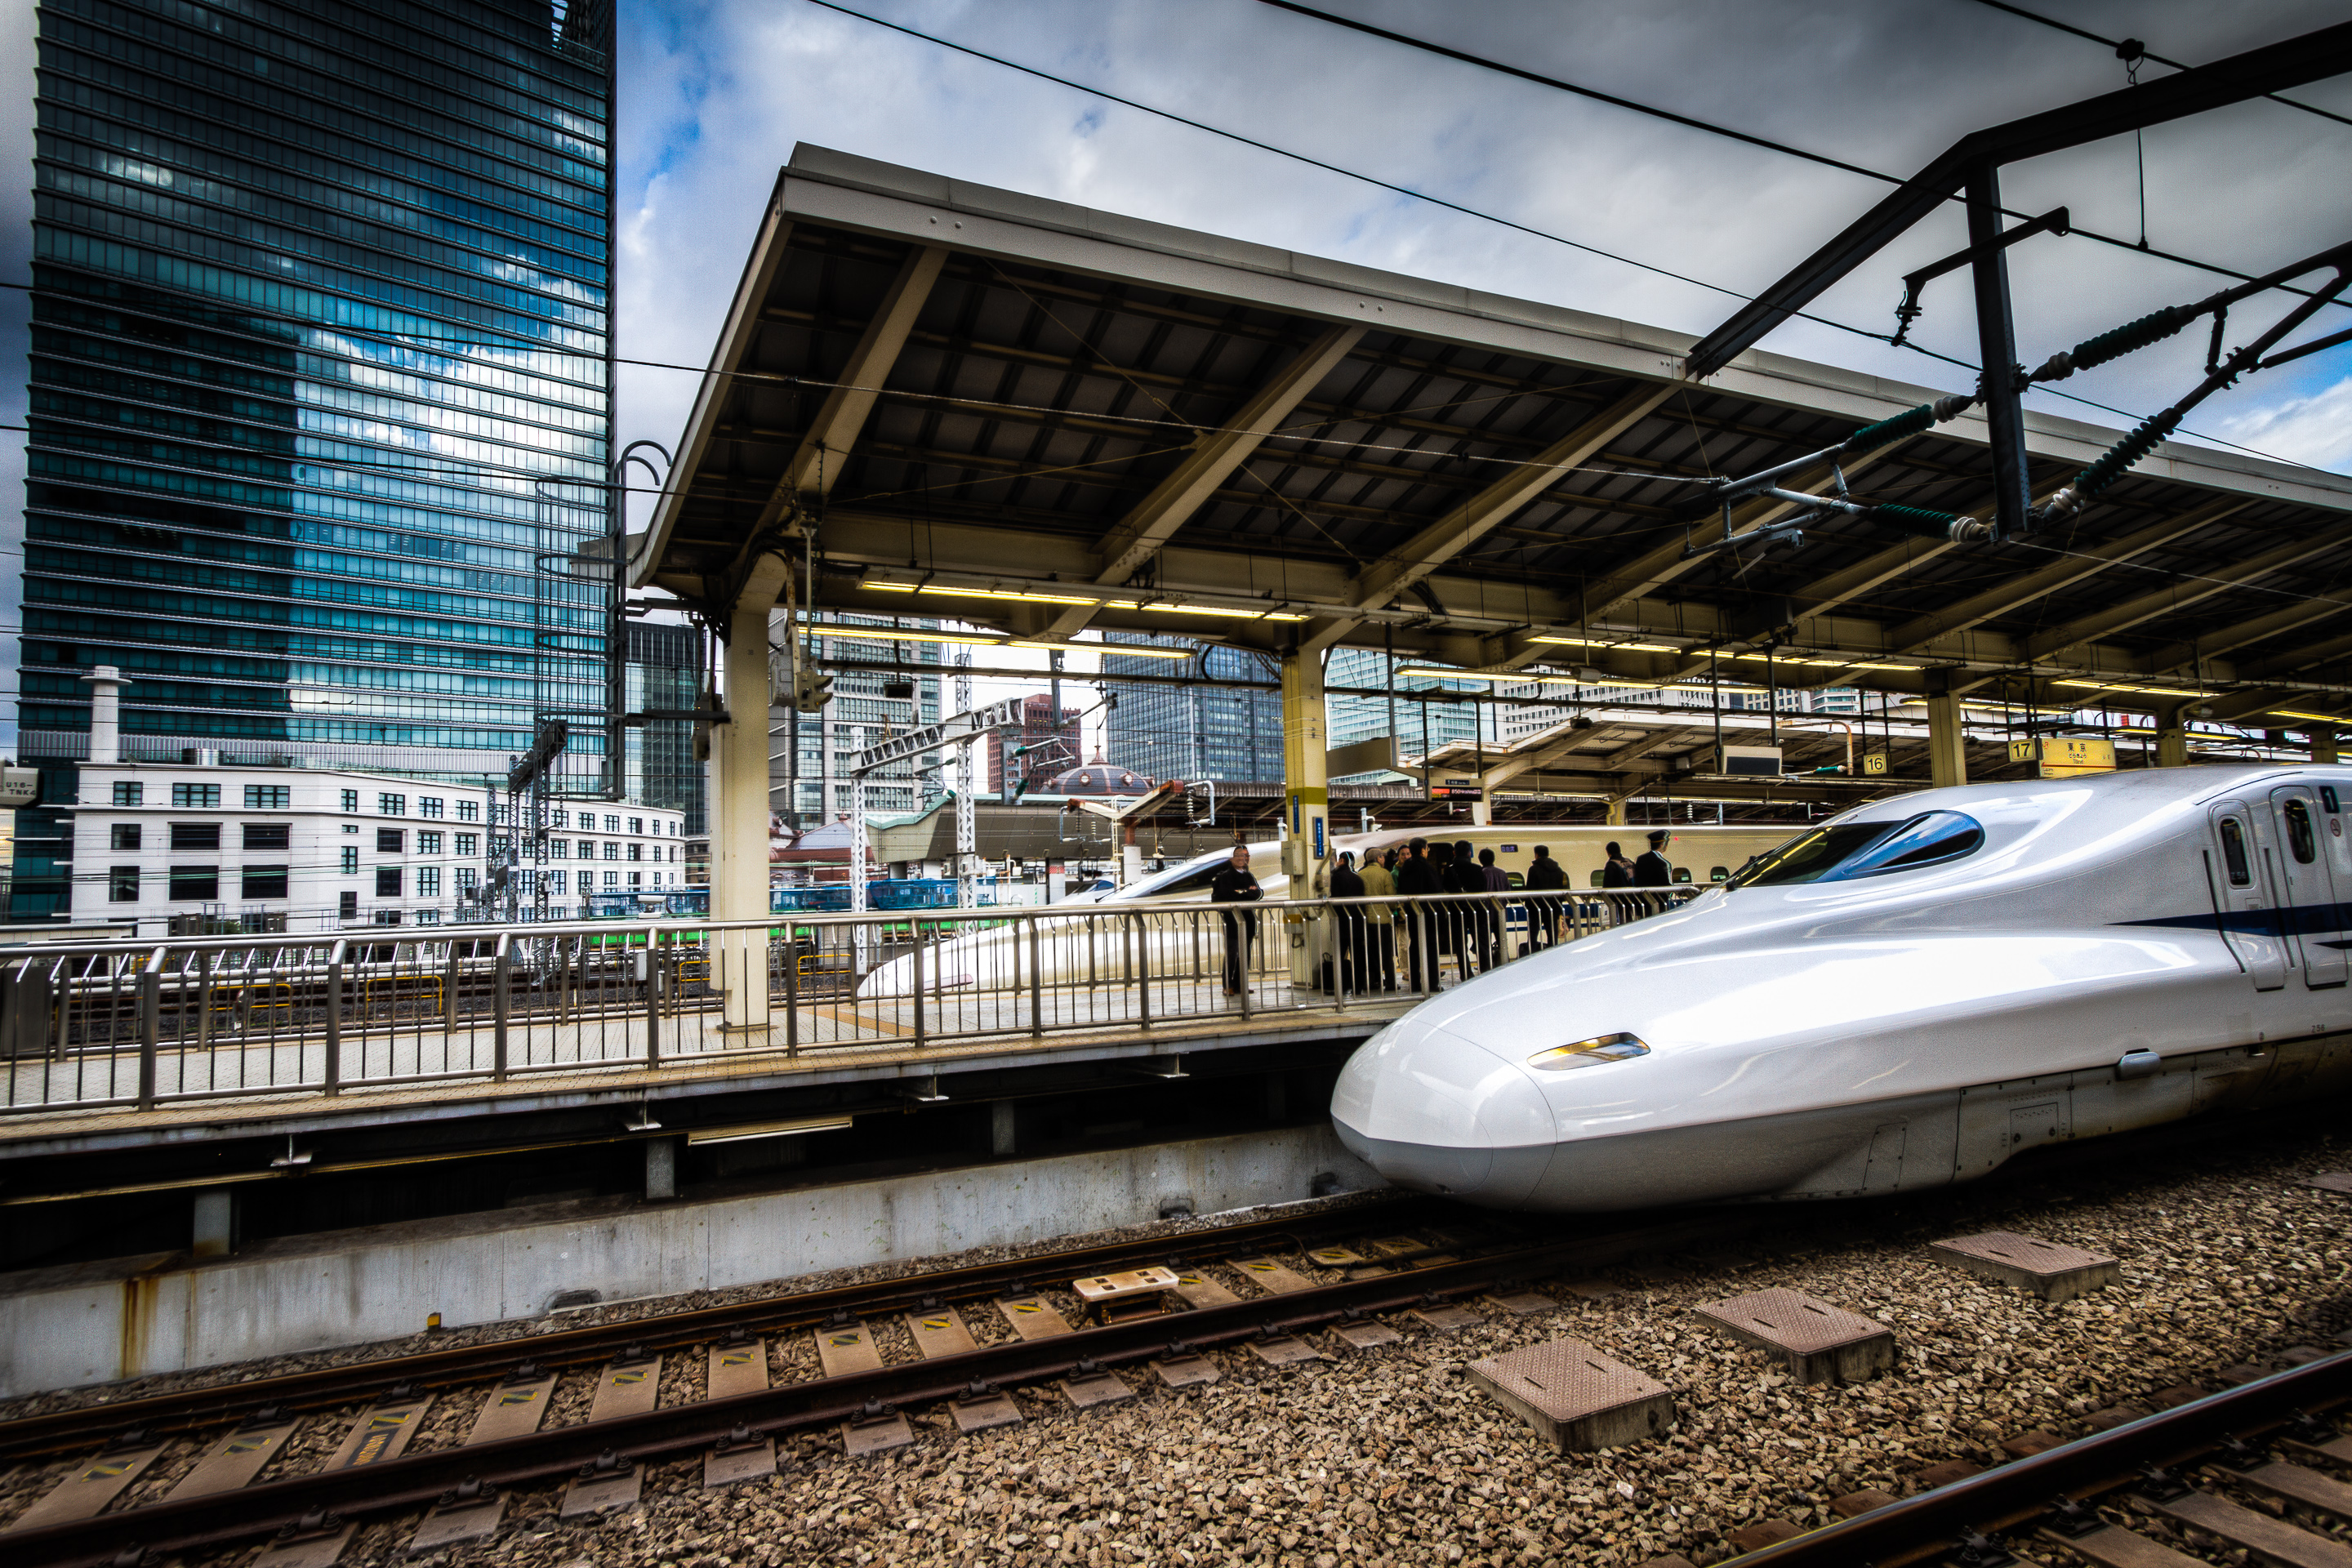 engineering connections bullet train - HD2880×1920